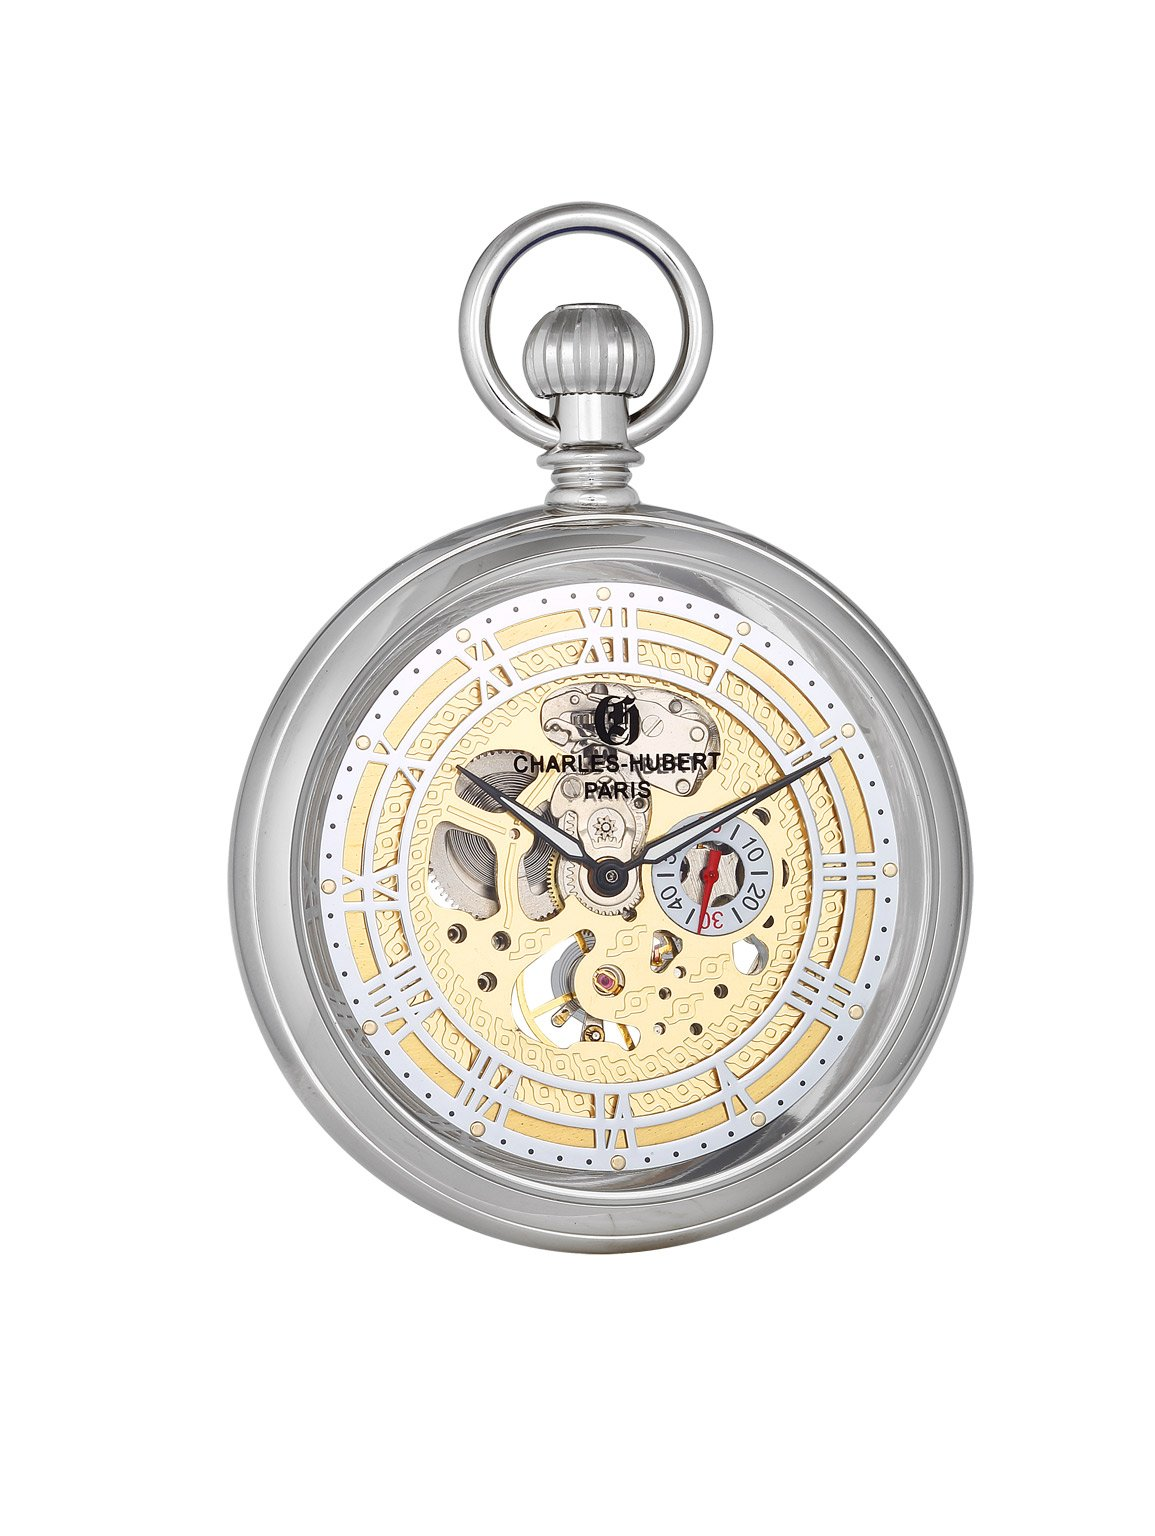 Charles-Hubert, Paris 'Classic Collection' Mechanical Hand Wind Brass Pocket Watch (Model: DWA018)